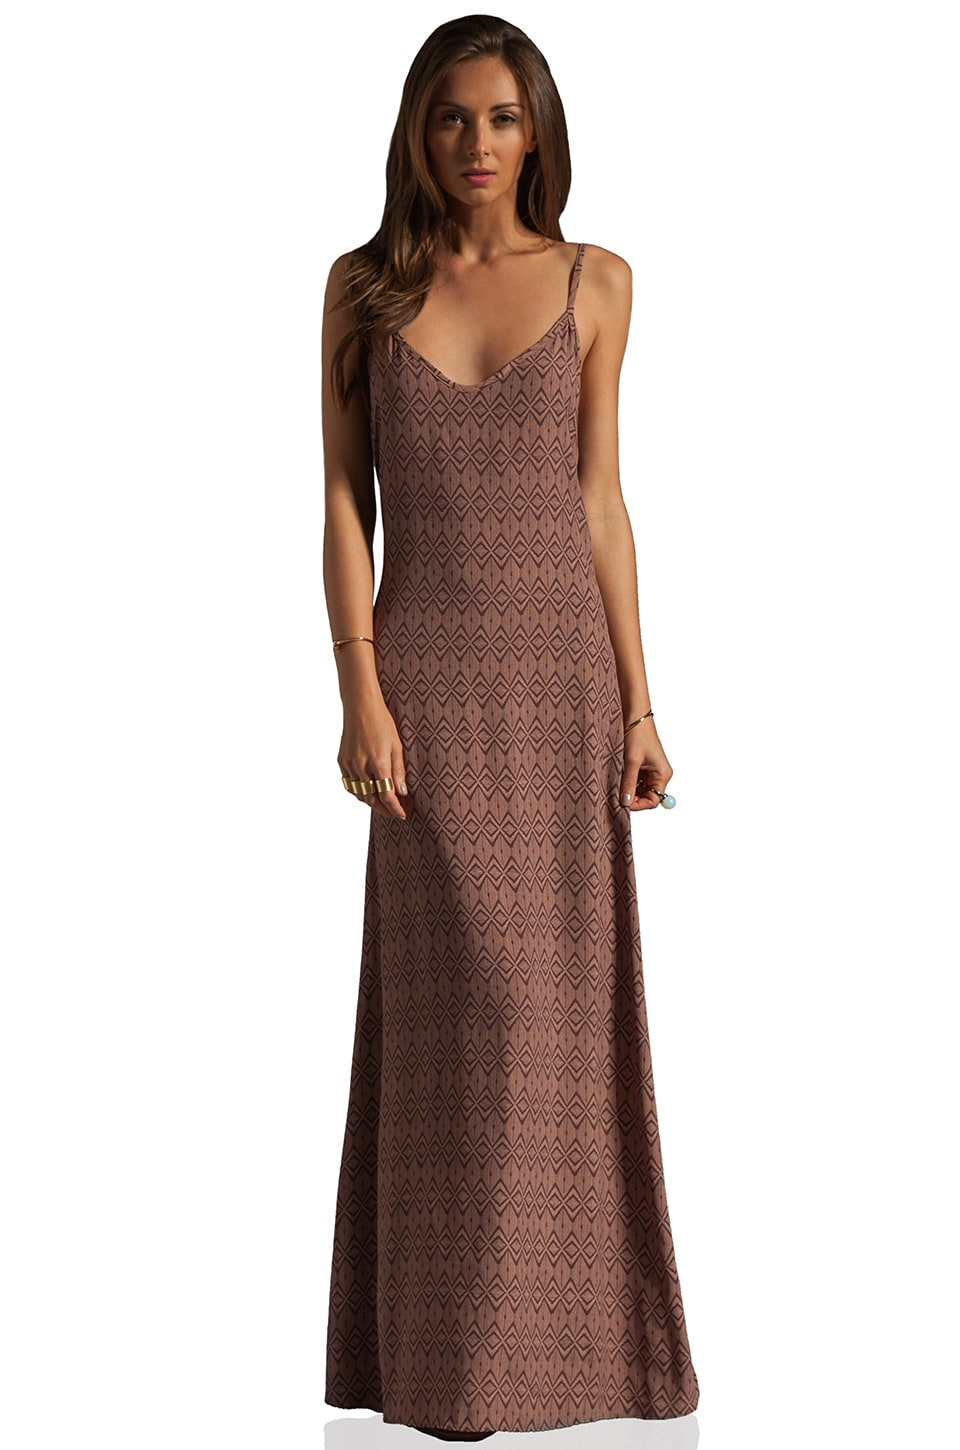 FLYNN SKYE Criss Cross Maxi Dress in Dune Tribal